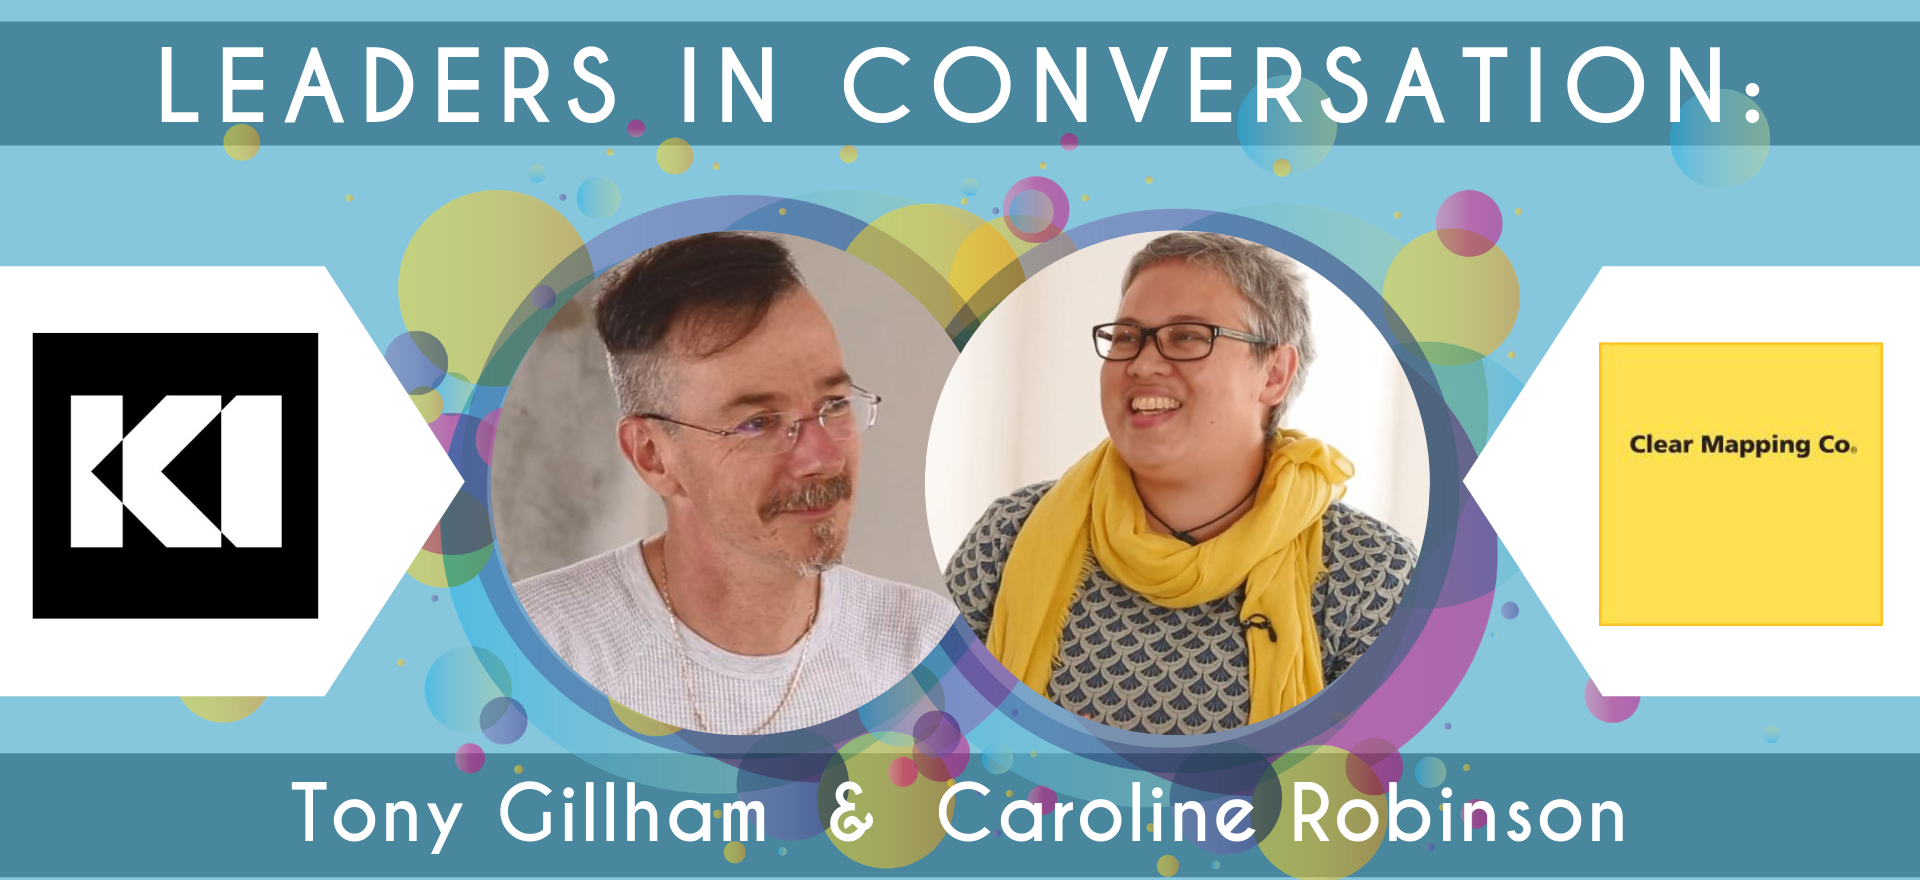 Leaders in conversation-Tony Gillham and Caroline Robinson